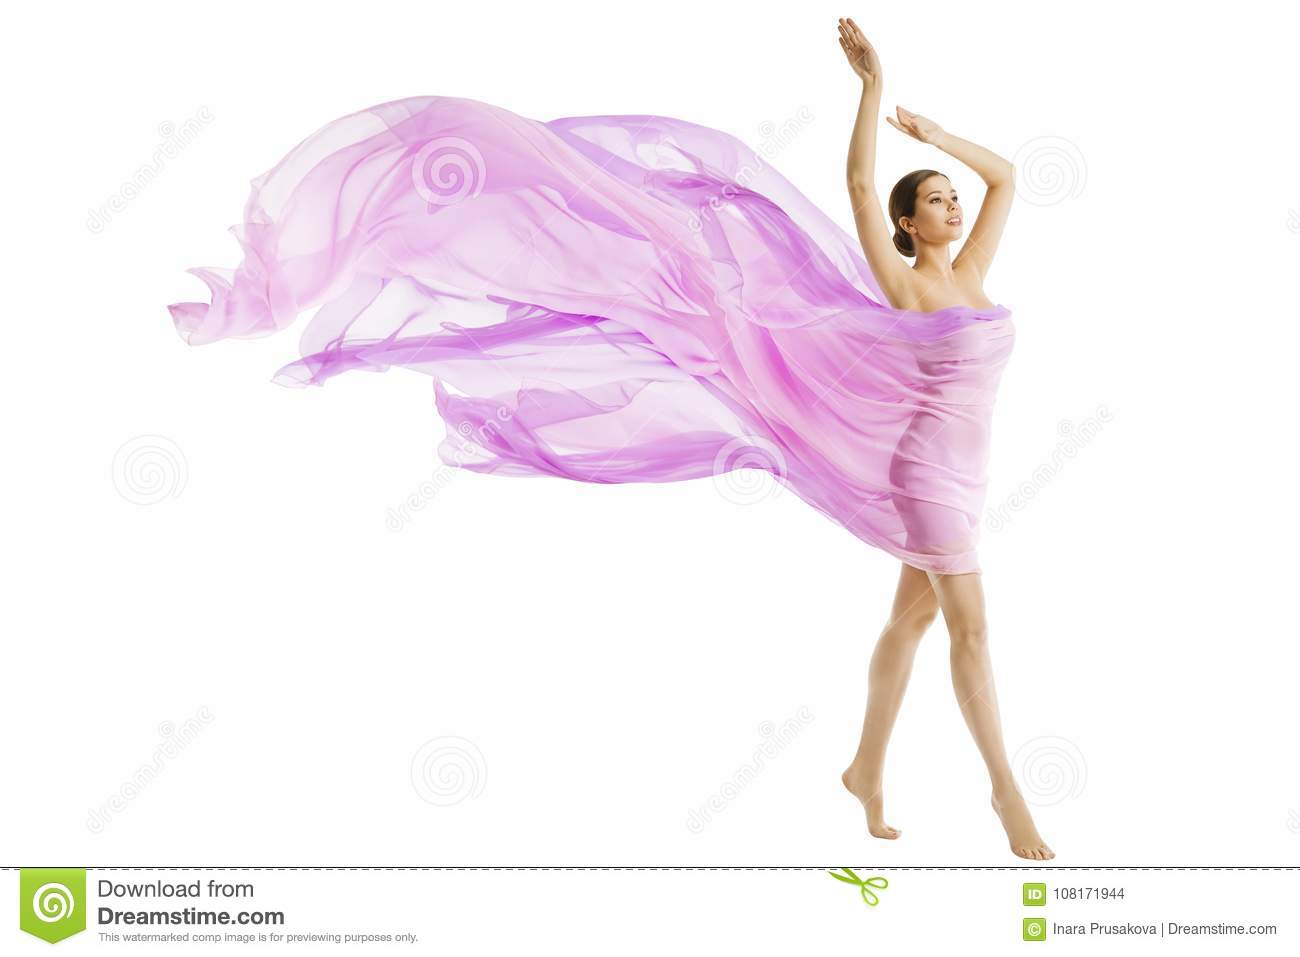 Woman Body Beauty, Model Dressed in Silk Pink Flying Fabric